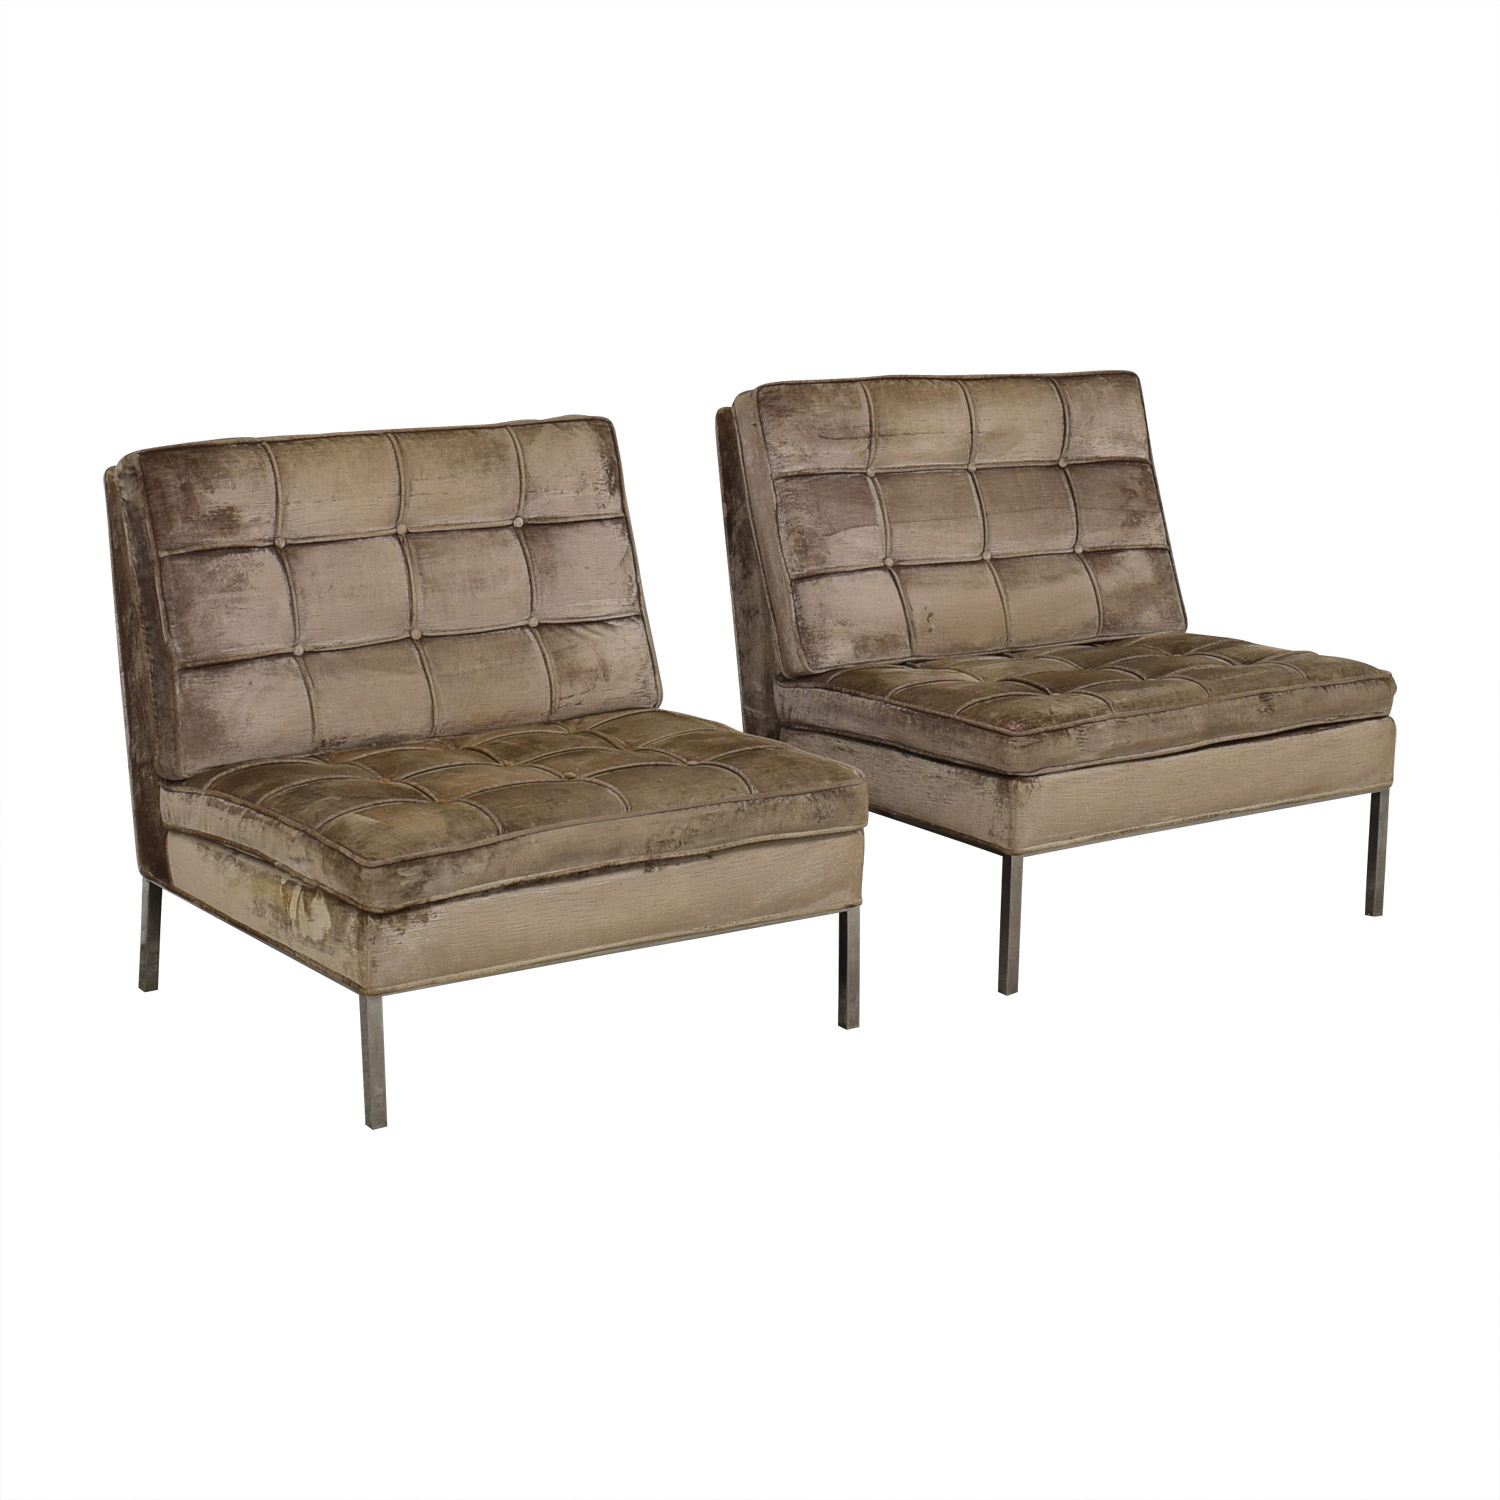 buy Knoll Knoll Beige Tufted Velvet Accent Chairs online